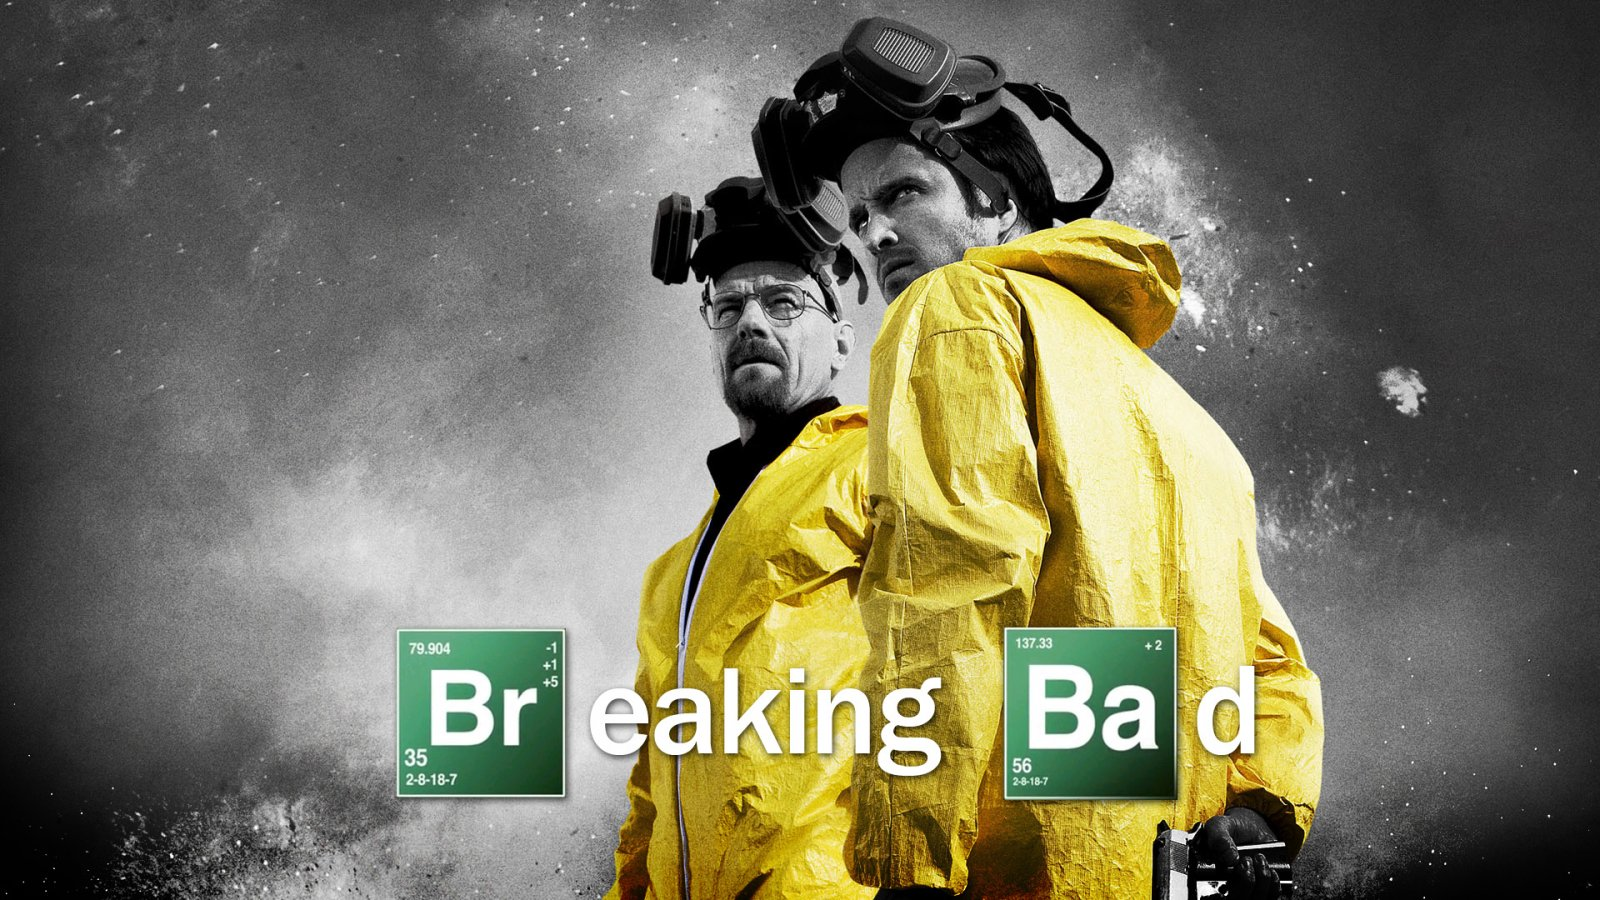 The deservedly praised tv series Breaking Bad, drew its plotlines from the clash between the drug culture and the Feds, intent on stopping the offenders. It touched a deep chord in American society.